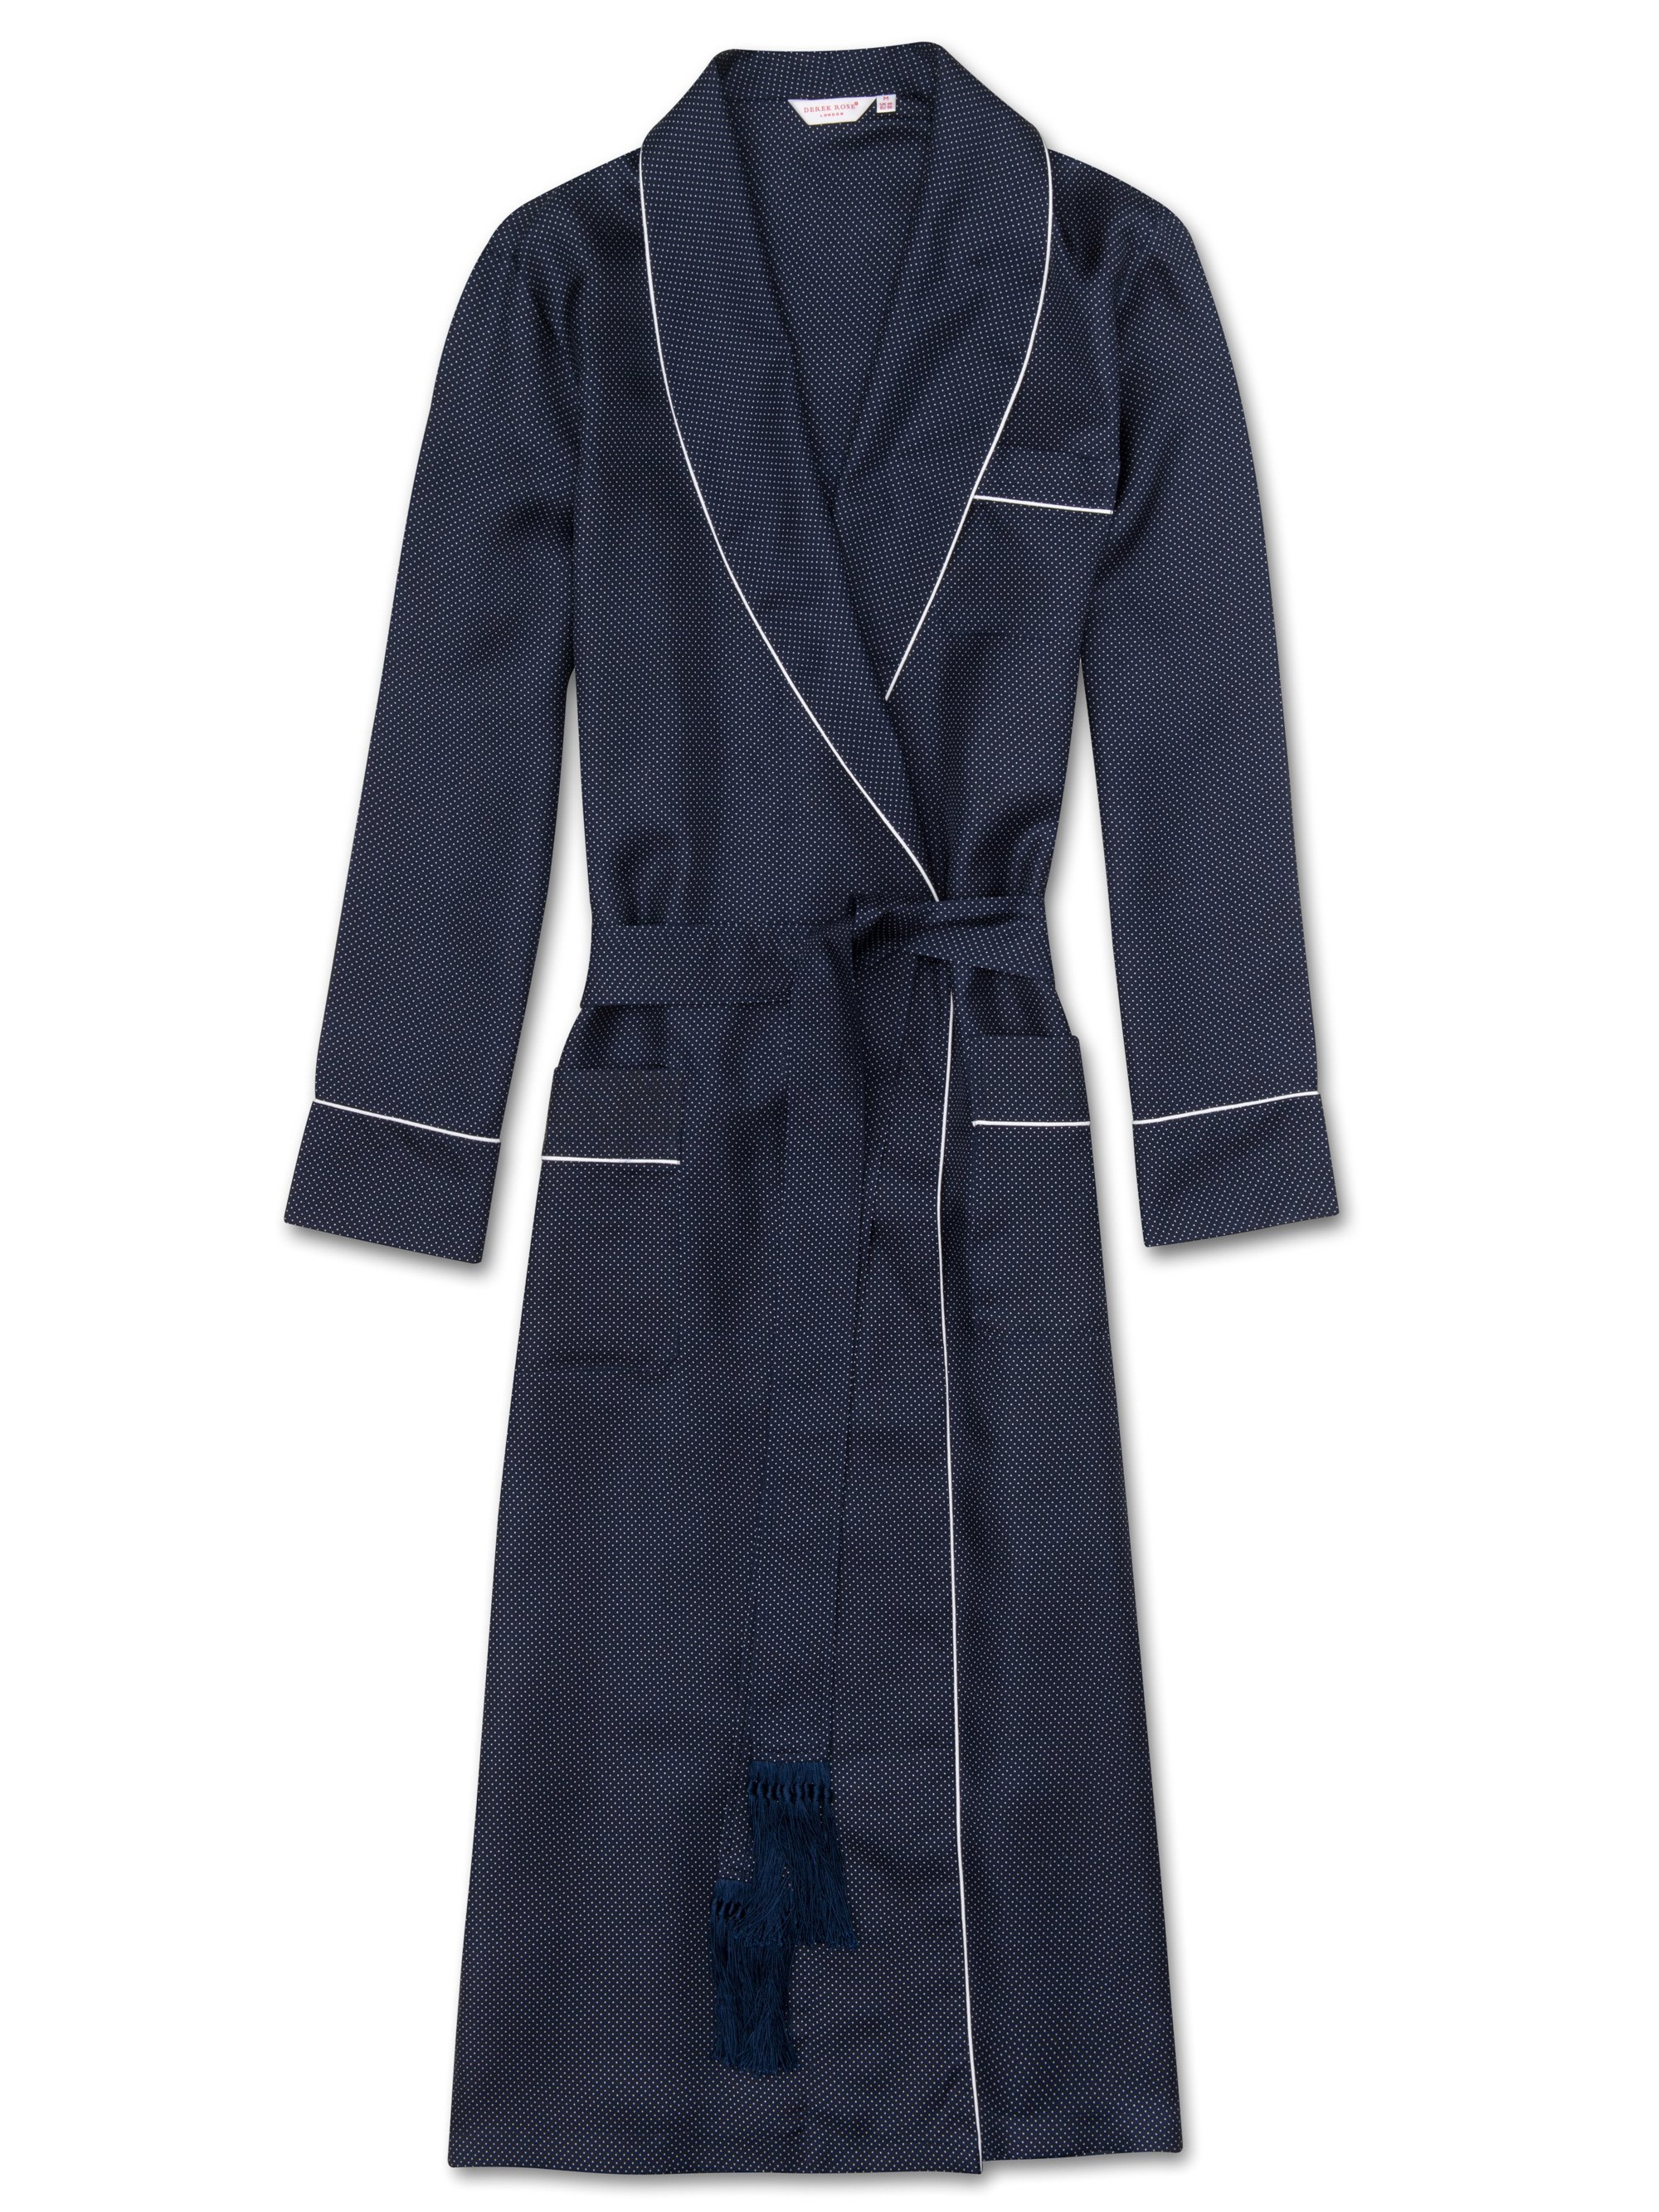 Men's Tasseled Belt Dressing Gown Otis 9 Pure Silk Navy